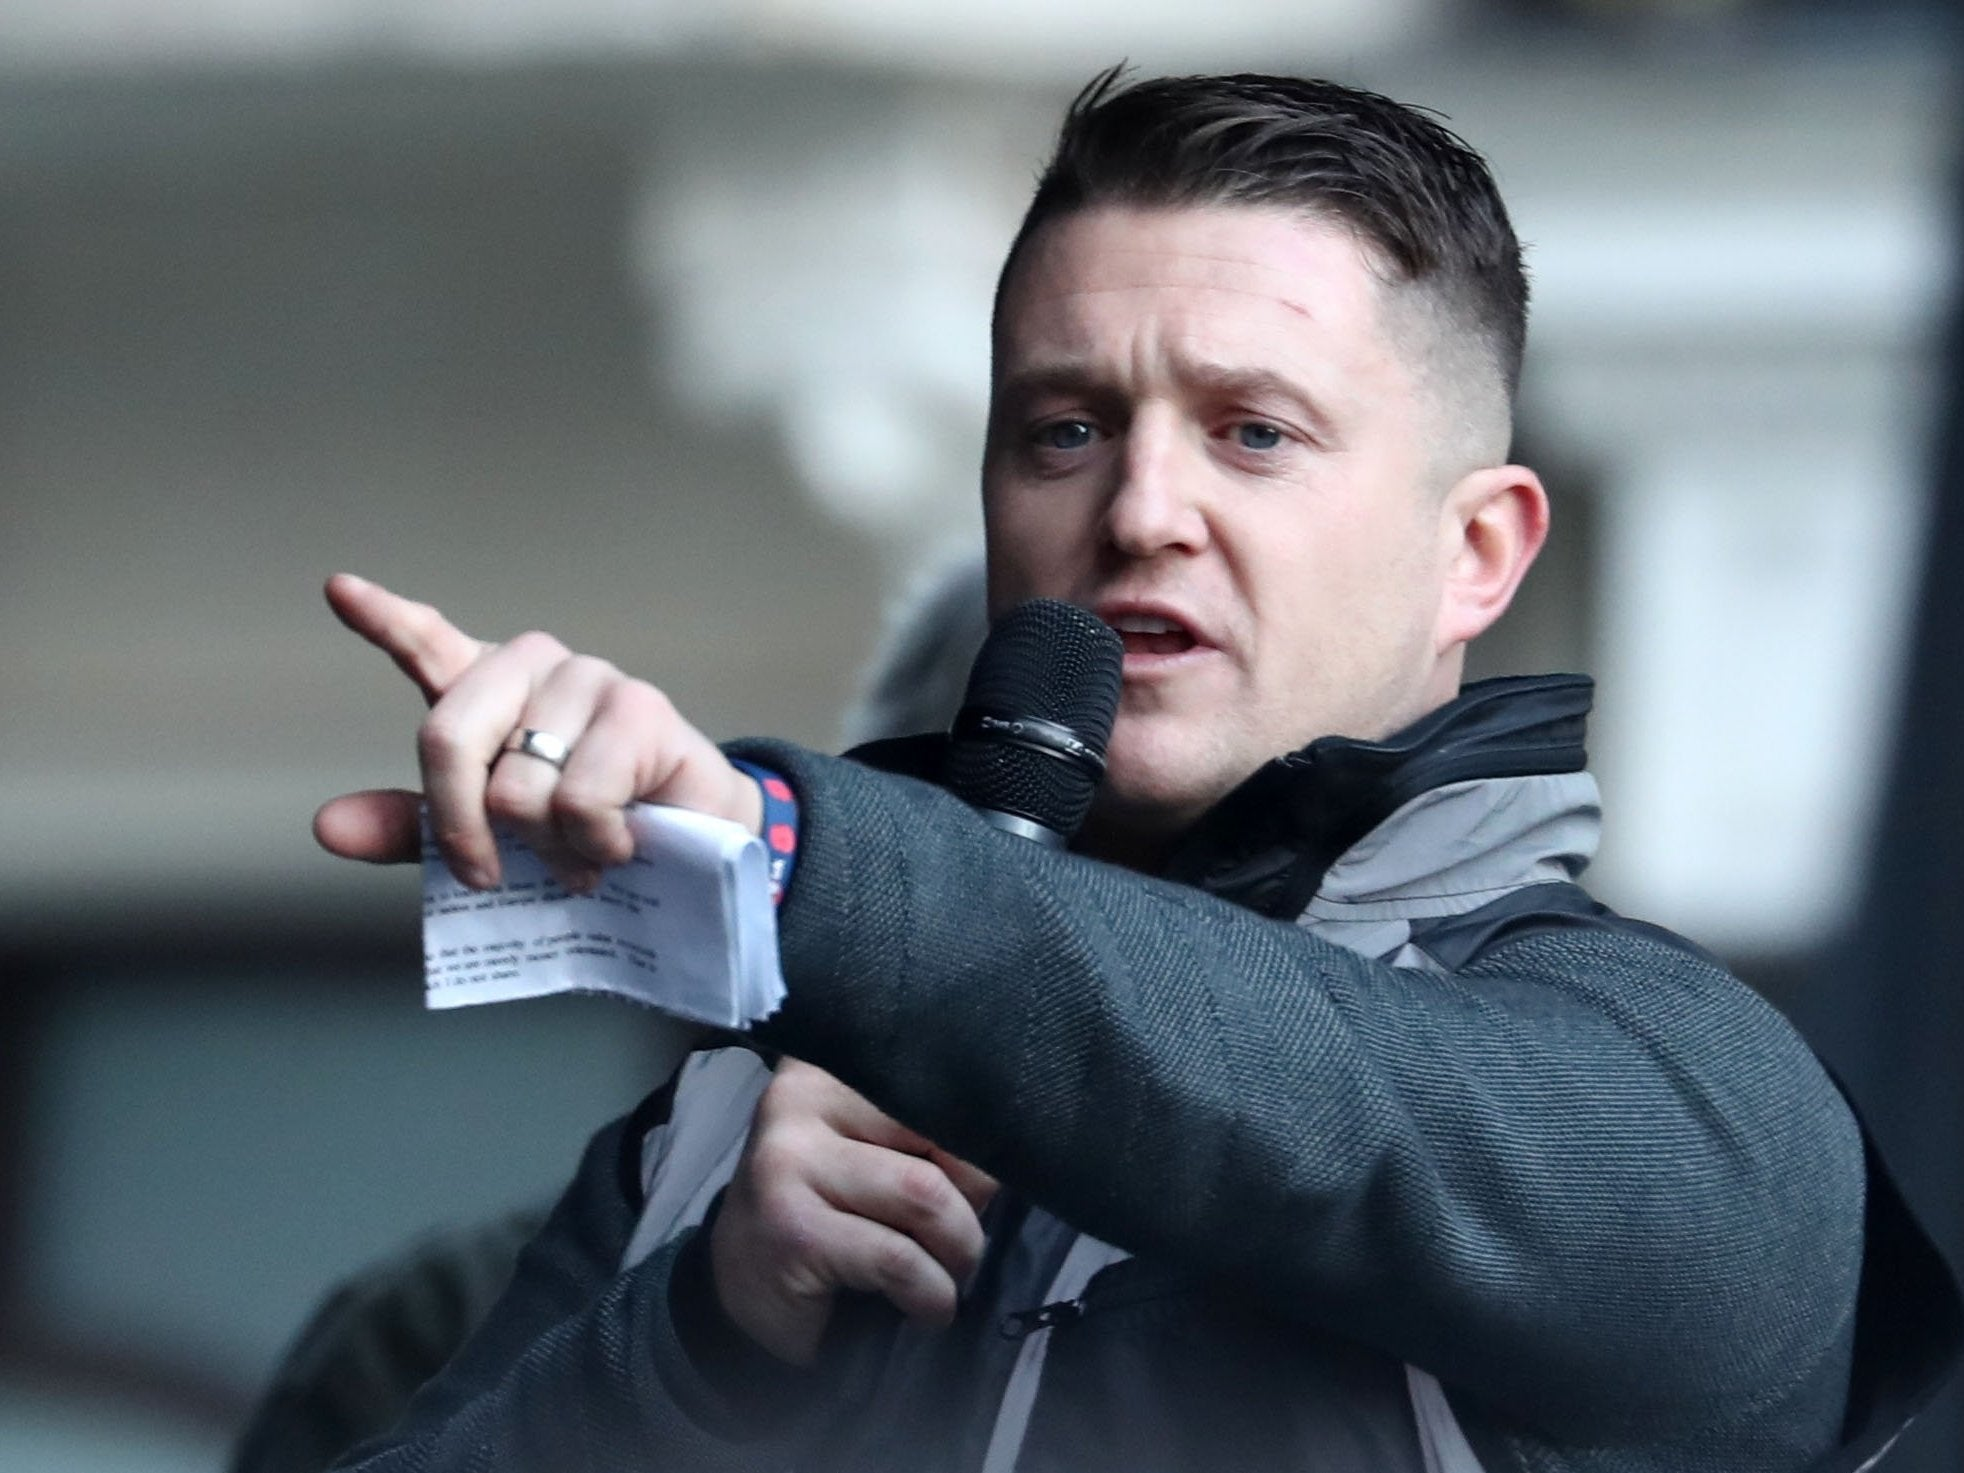 Tommy Robinson supporters send racist abuse to personal trainer over fitness class for Muslim women